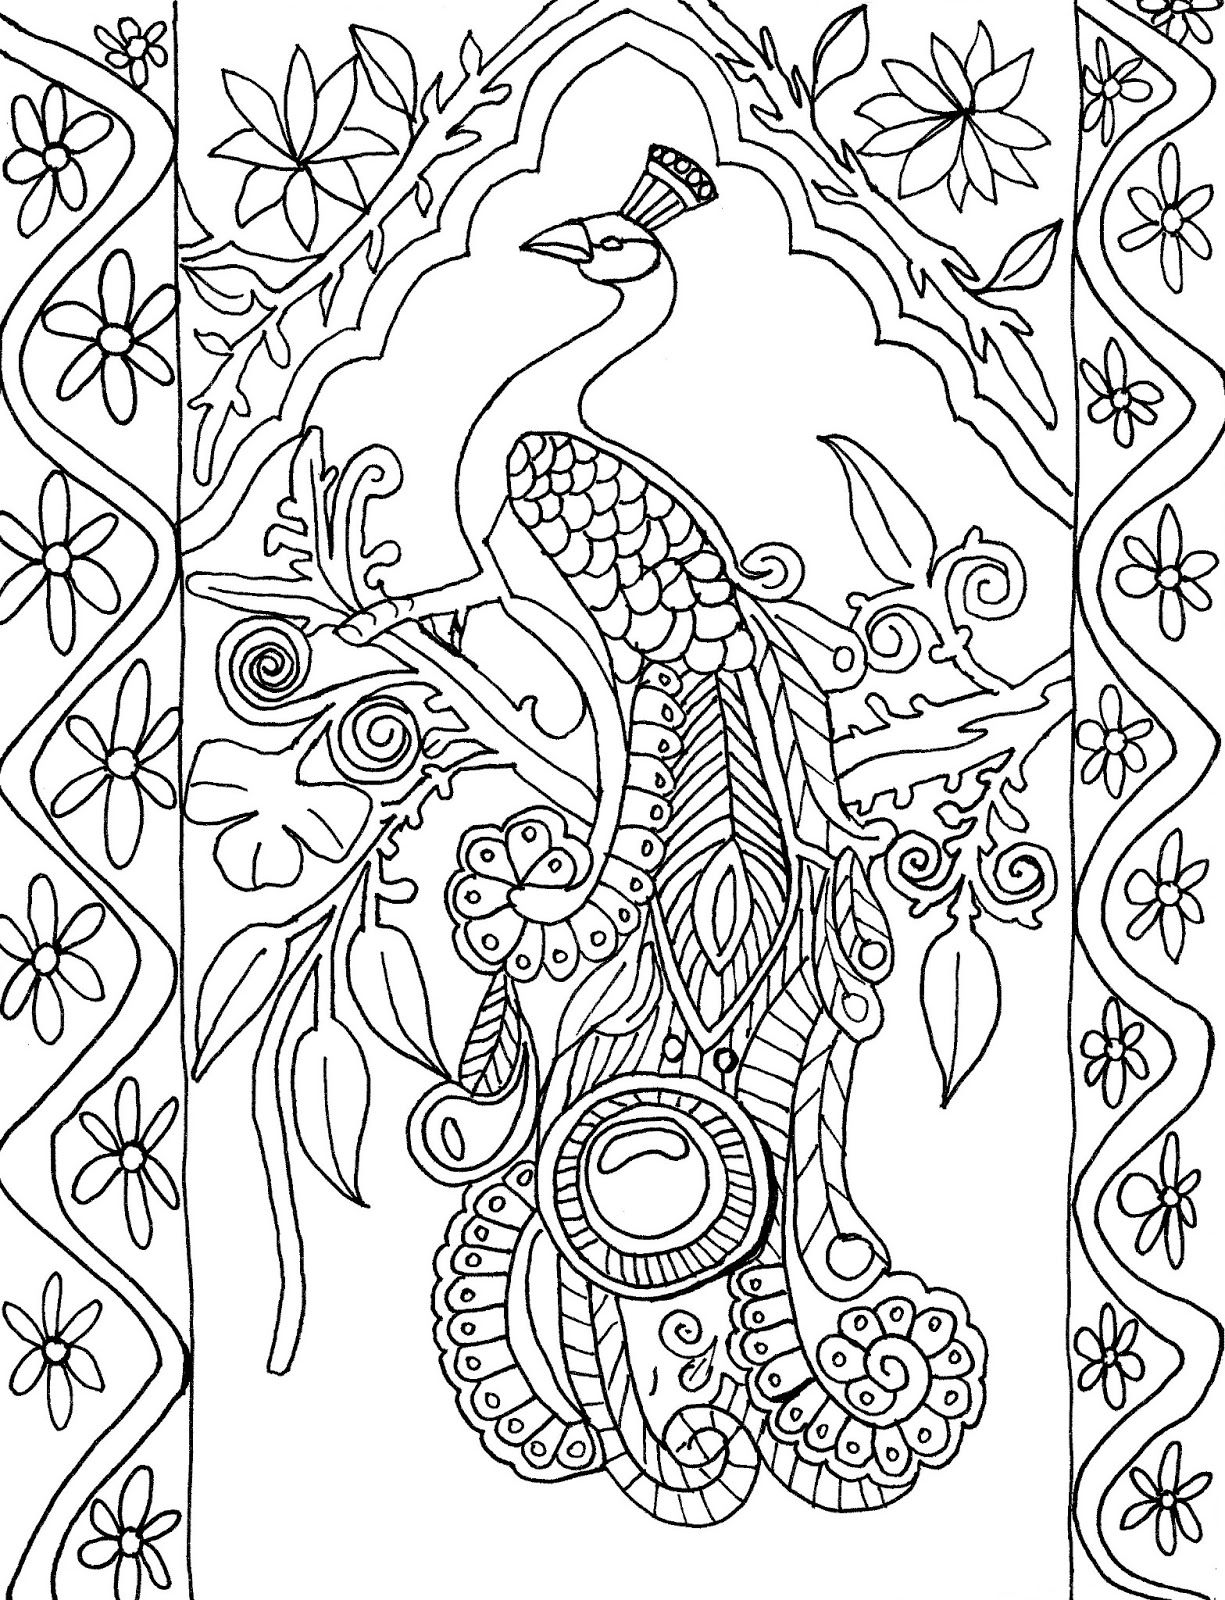 The printable peacock coloring pages can be colored by so for Different coloring pages